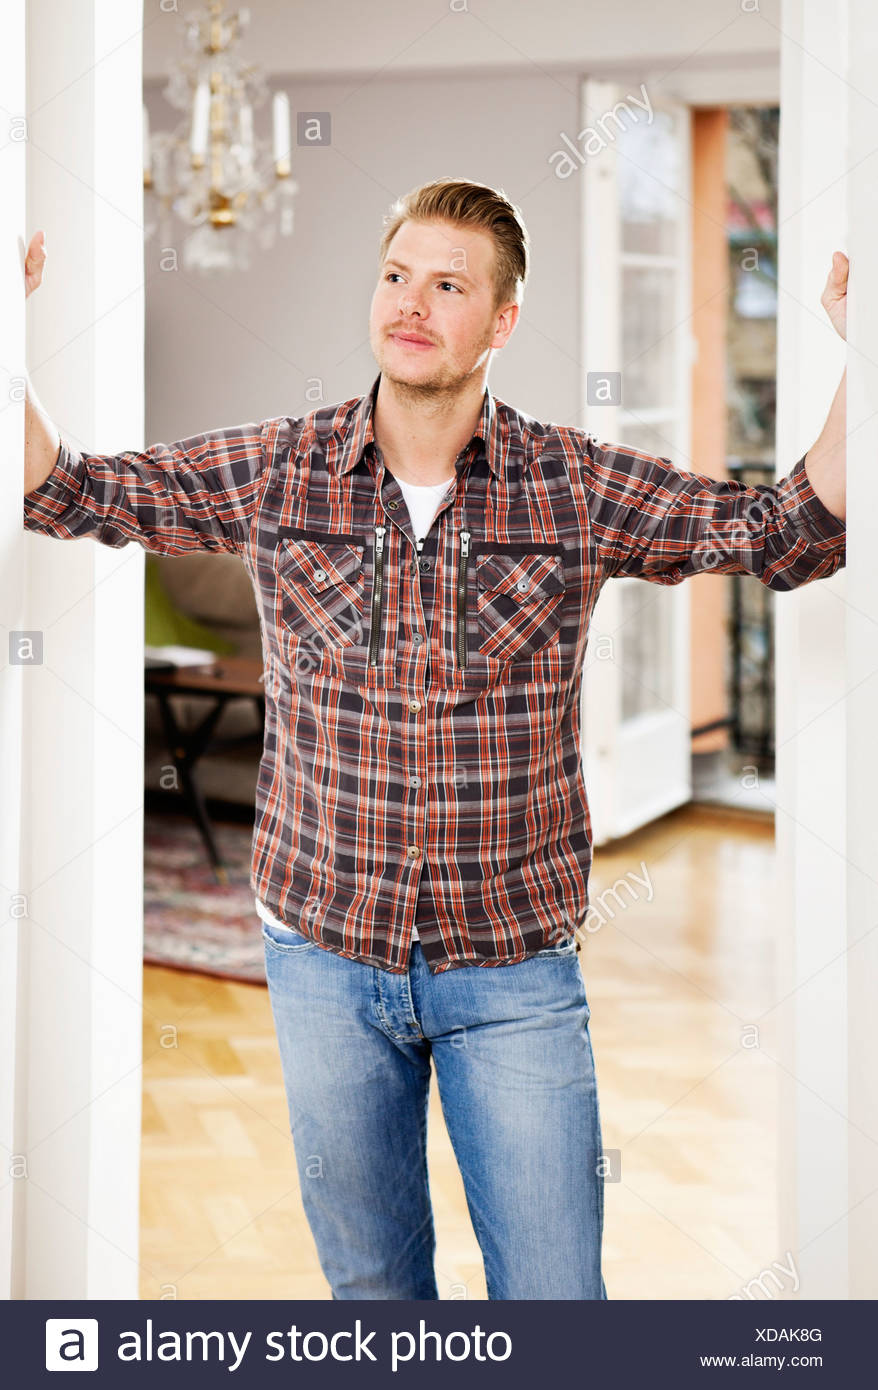 Mid adult man in checked shirt standing in doorway - Stock Image